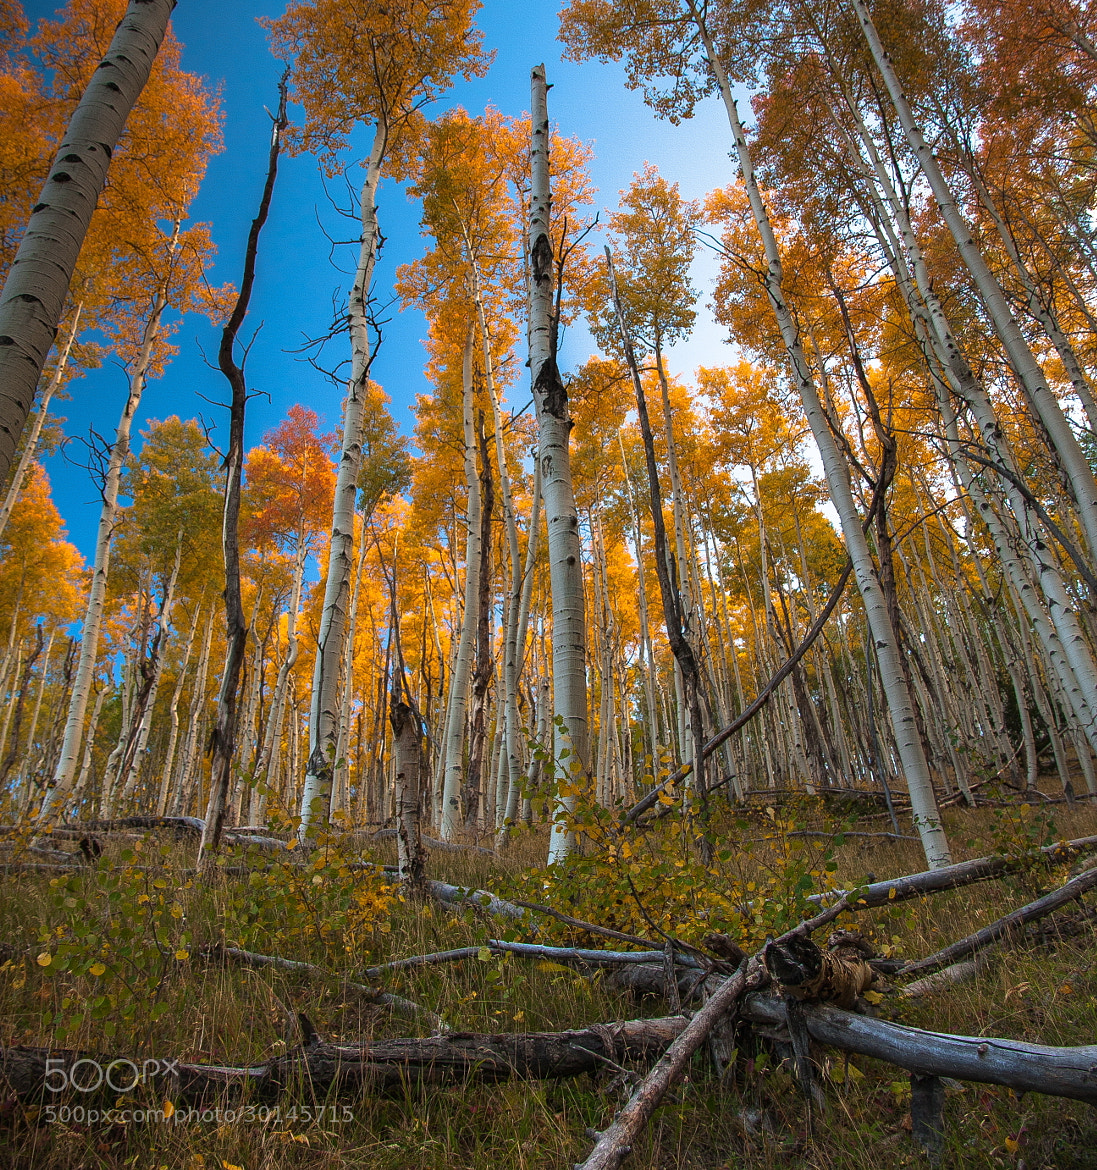 Photograph Aspens by Elena Giorgi on 500px